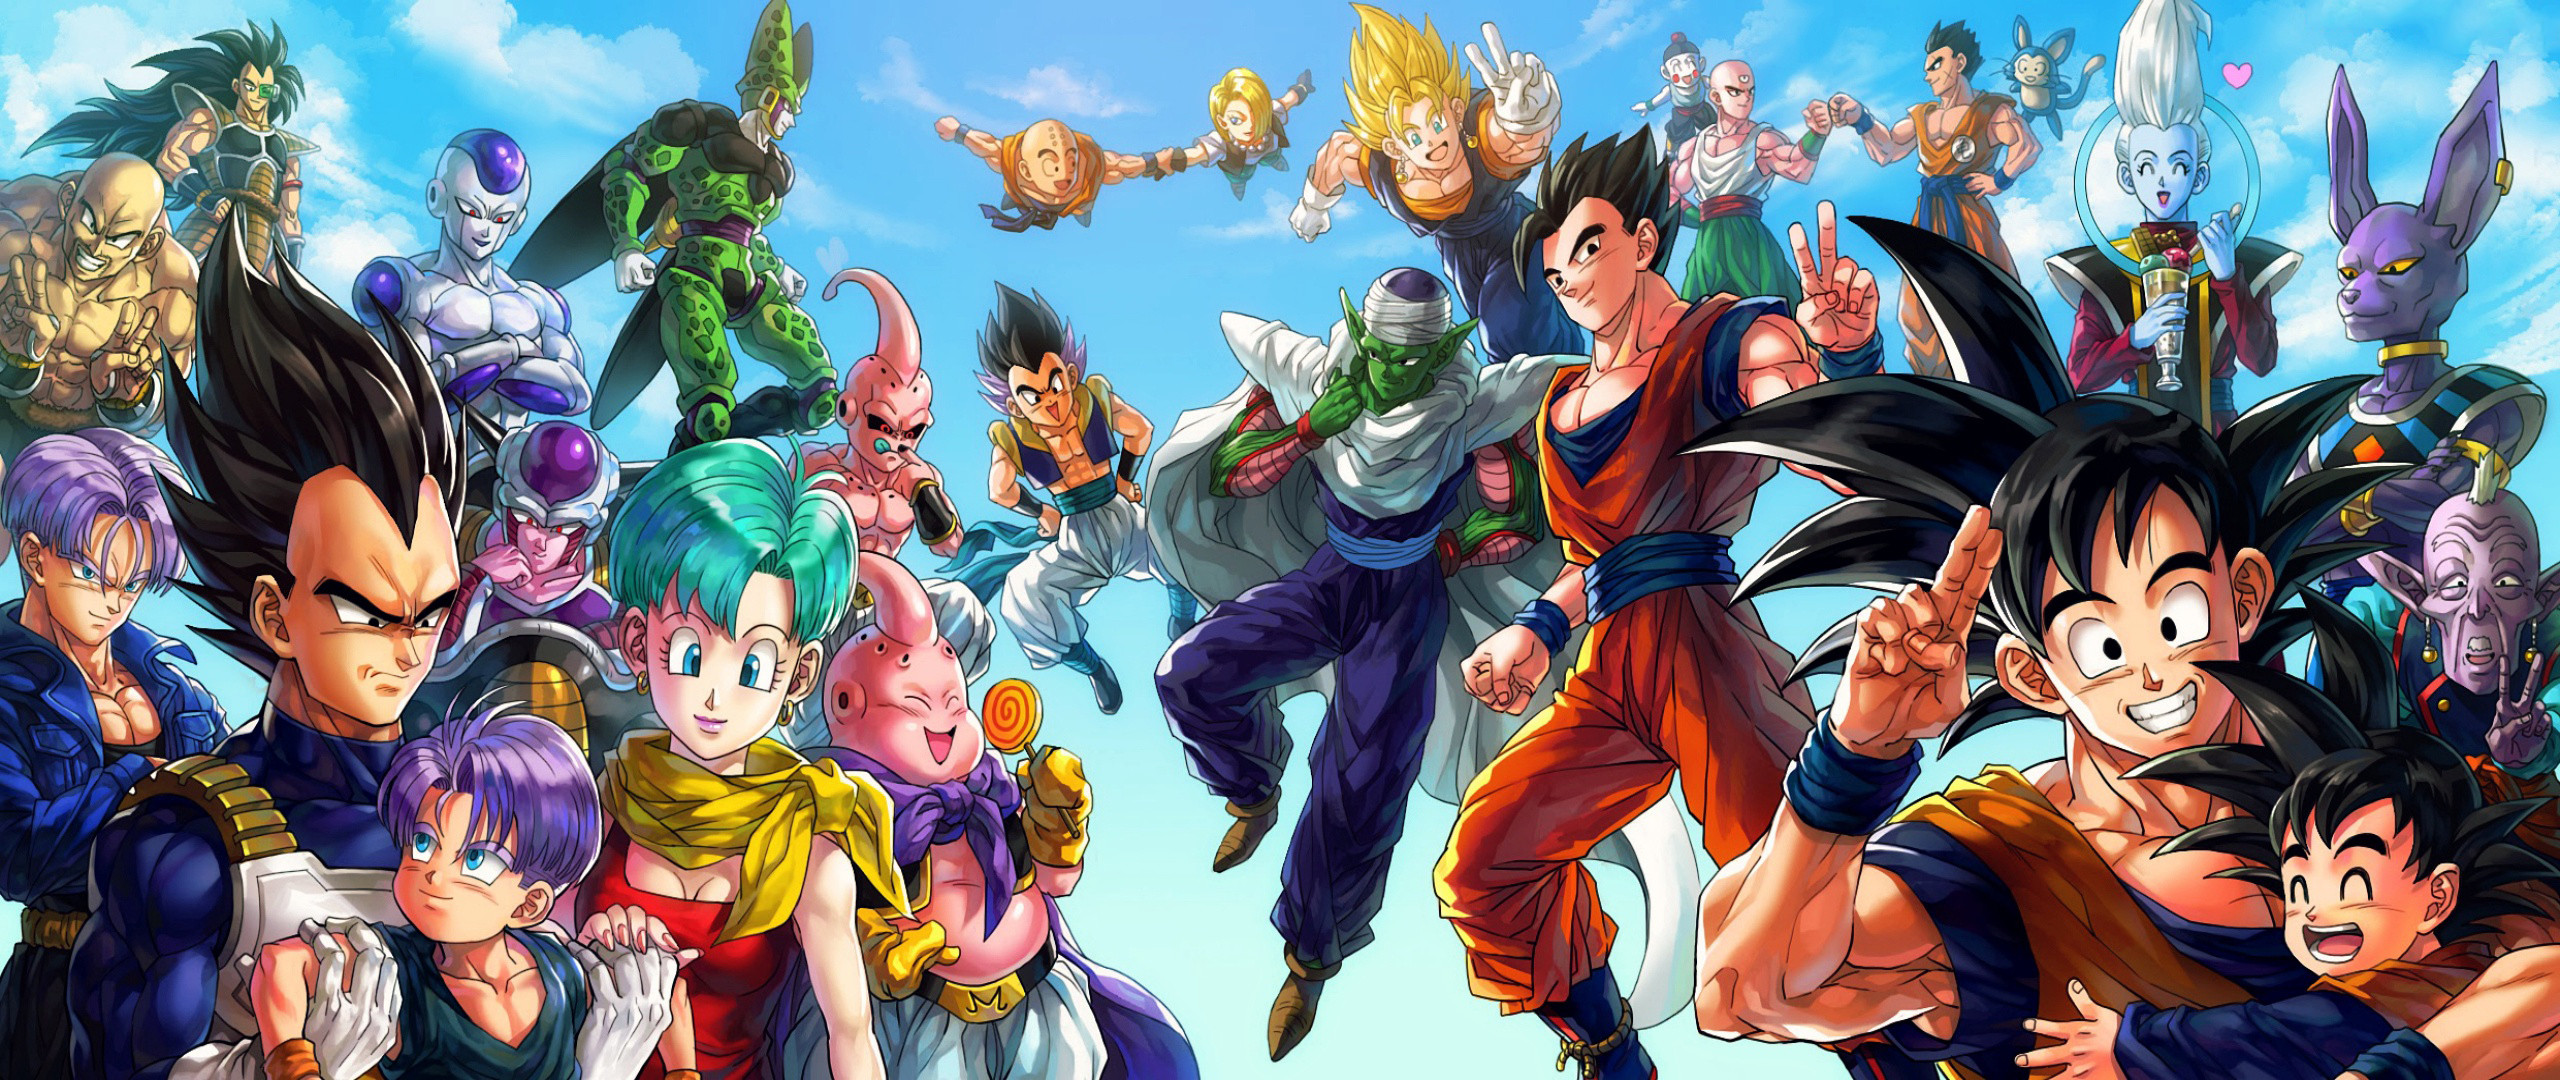 Piccolo Wallpapers Hd Wallpaper Collections 4kwallpaper Wiki